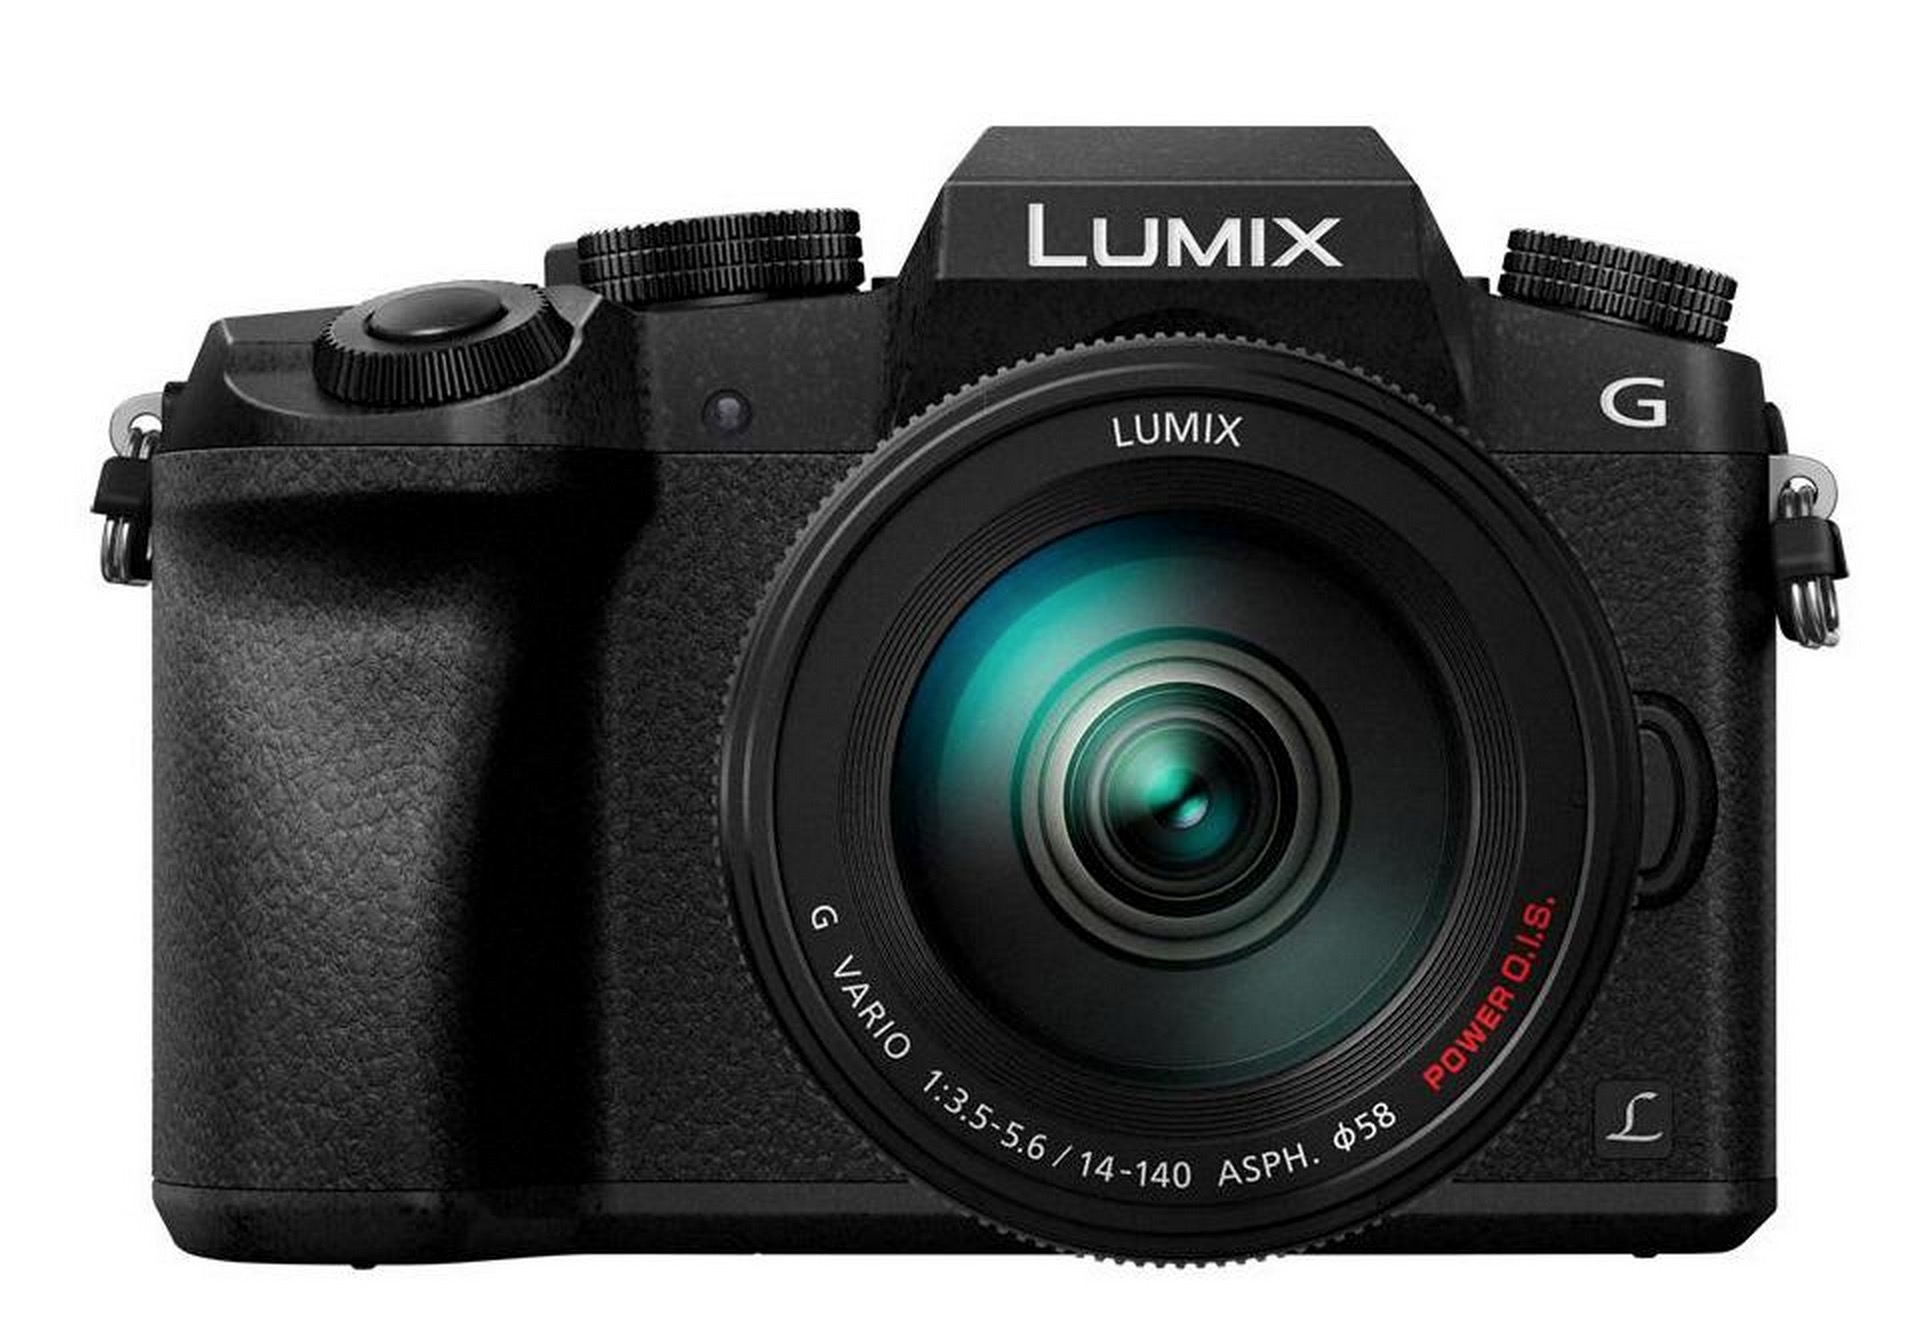 Lumix G7 with 14-140mm F/3.5-5.6 lens.